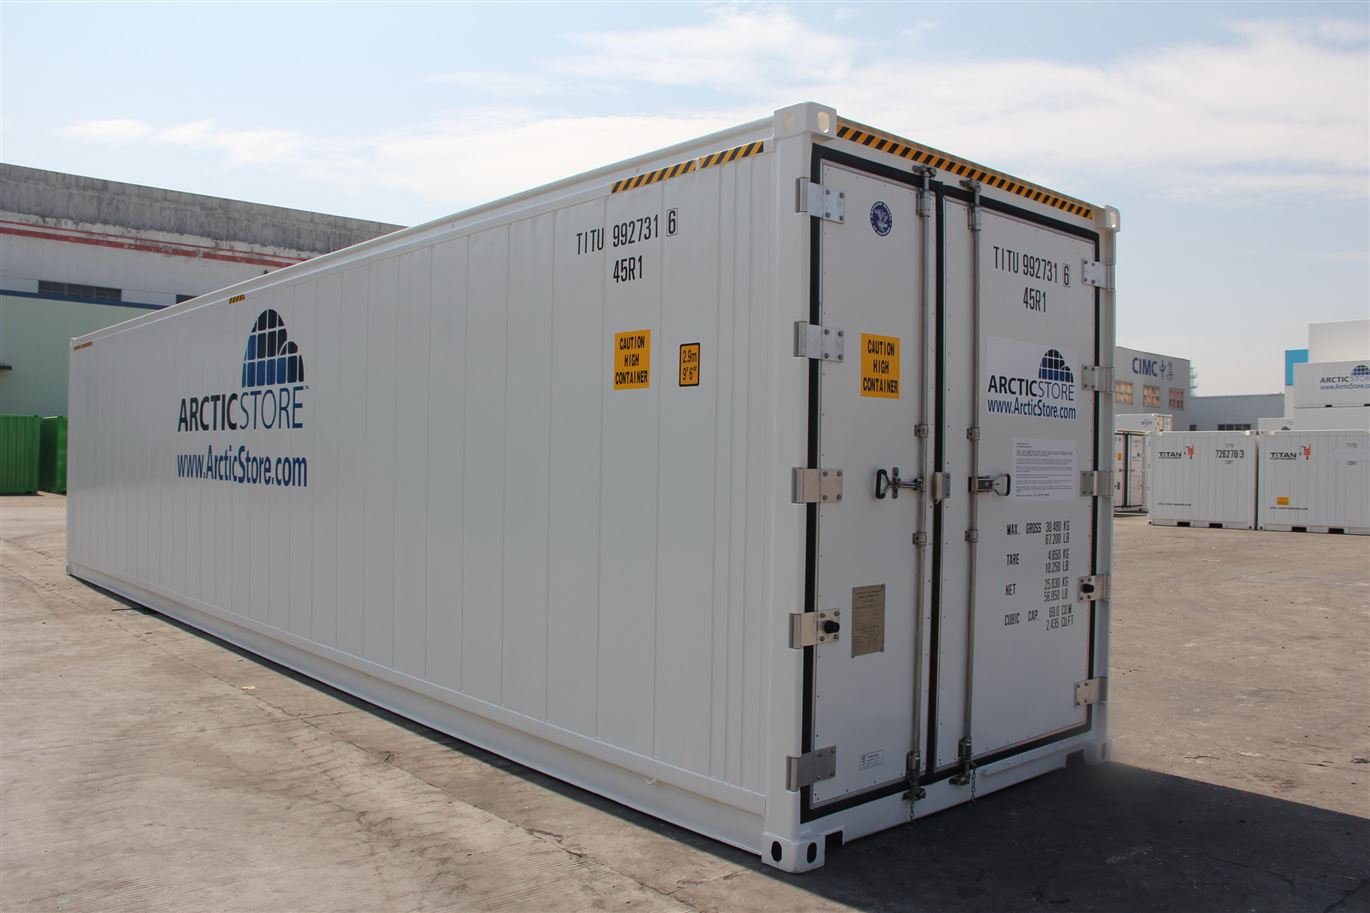 Cratex Container has one of the largest selection of Sea Can containers in North America.